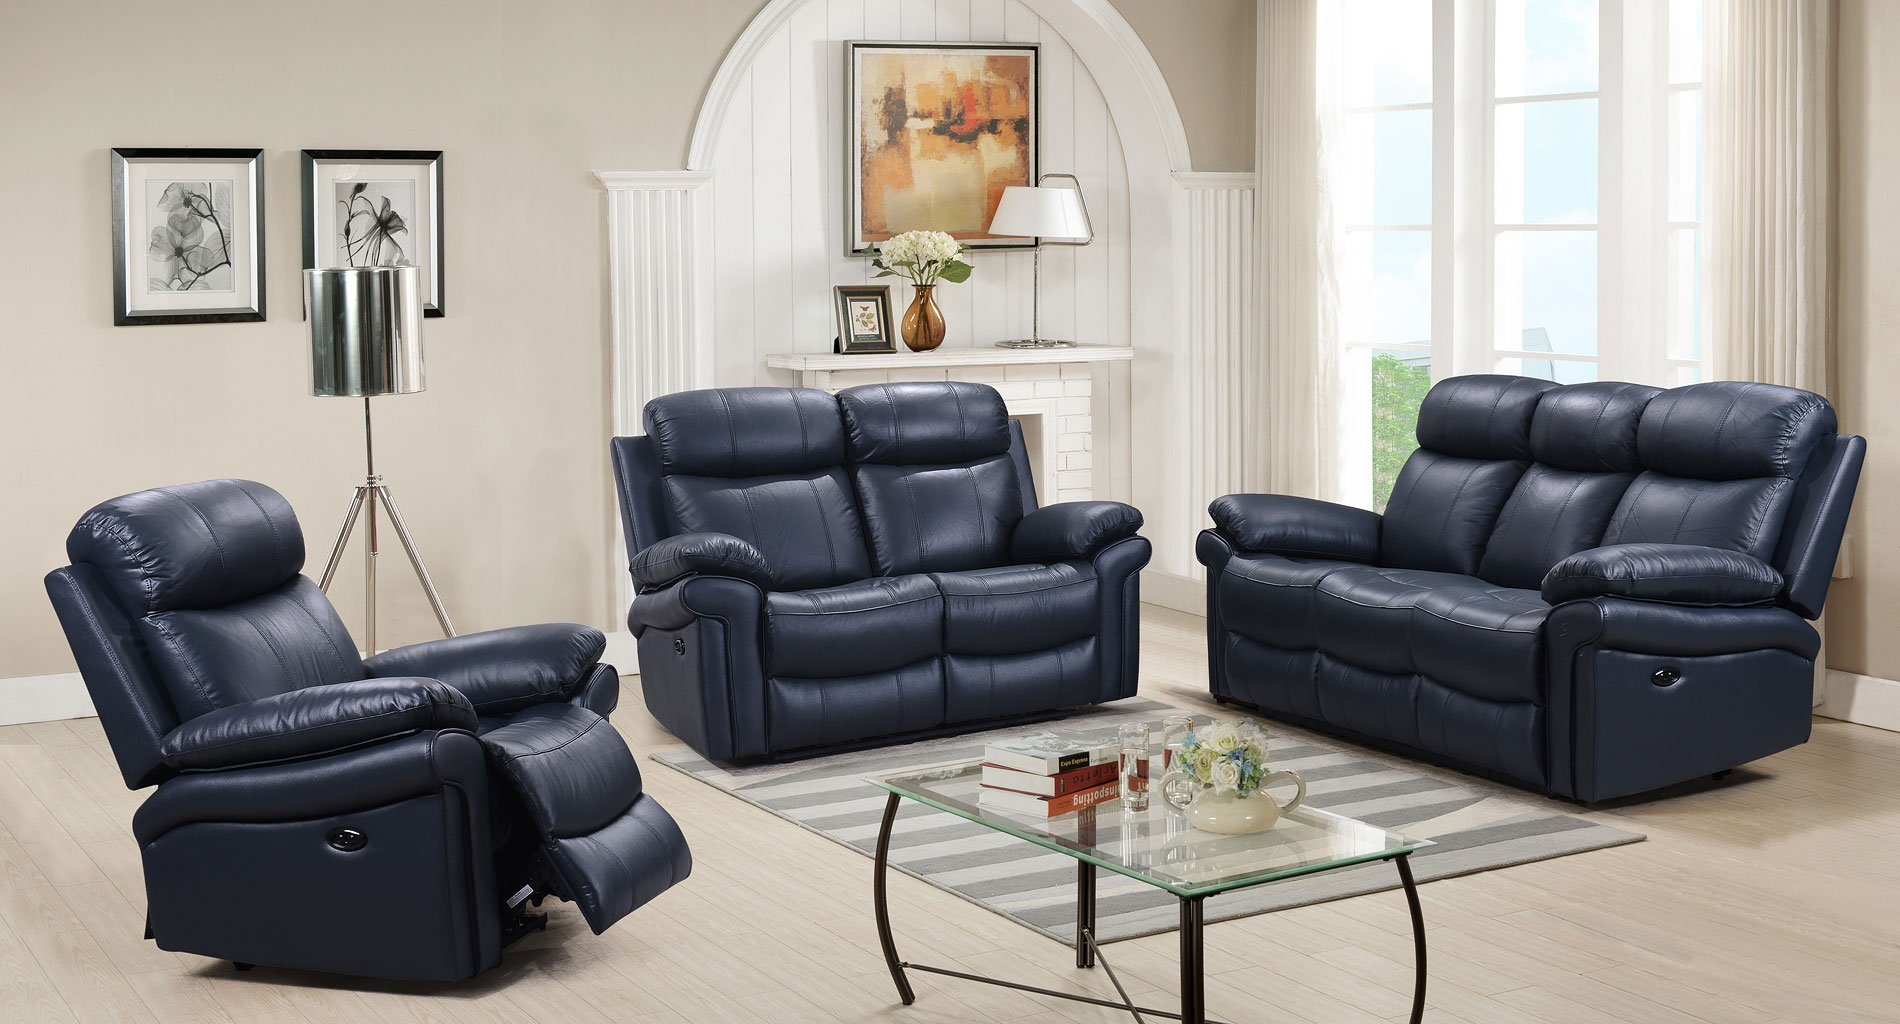 Joplin Power Reclining Living Room Set Navy Living Room Sets Living Room Furniture